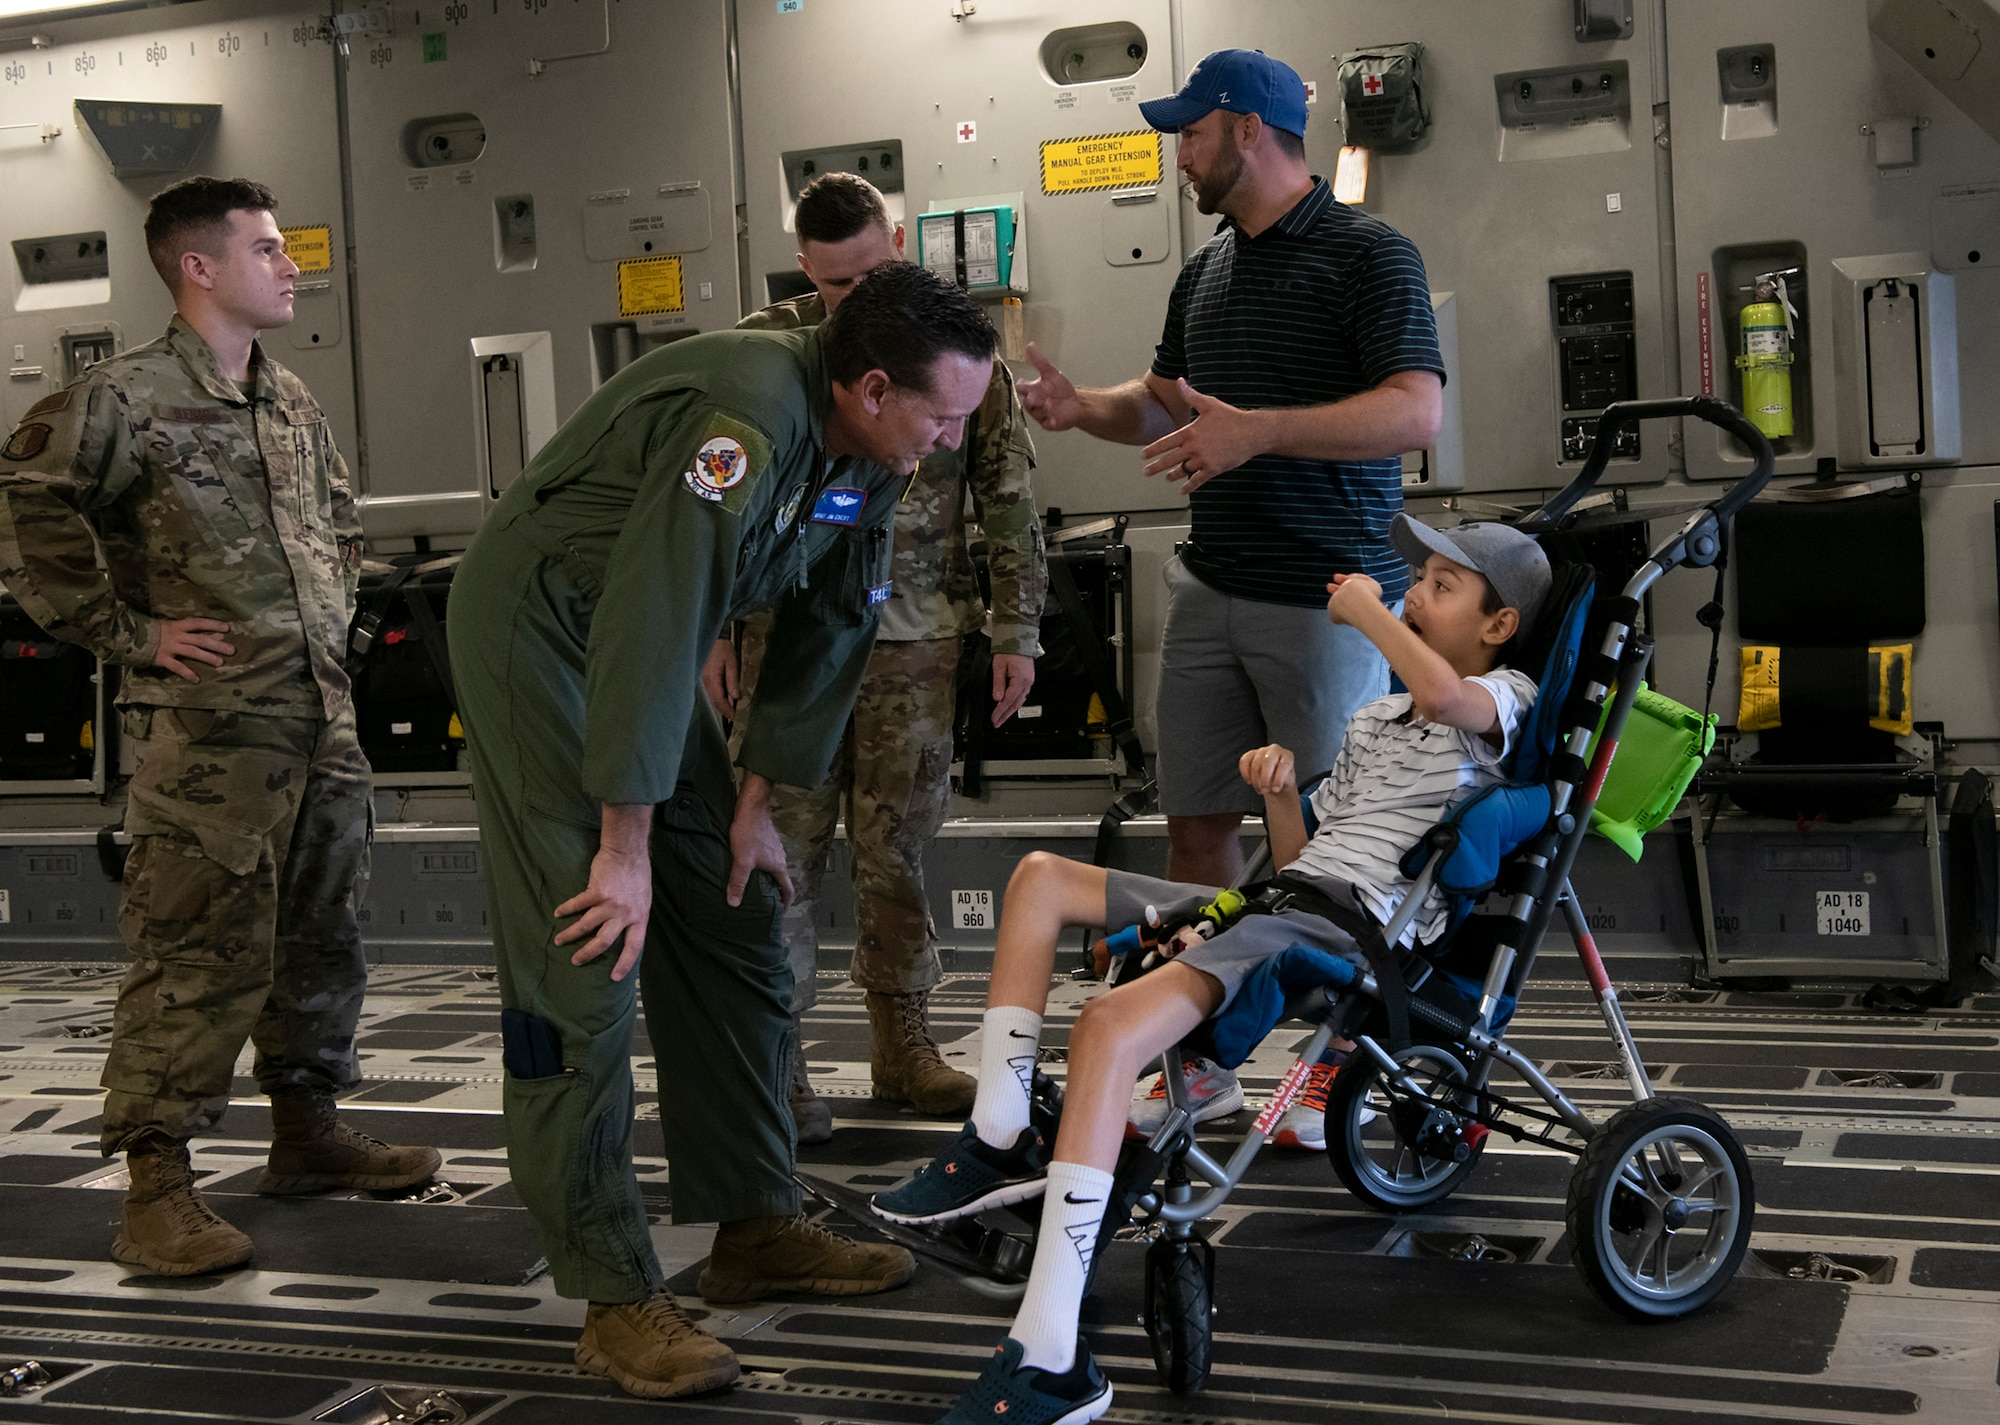 Master Sgt. James Ebert, 701st Airlift Squadron loadmaster, speaks with Braiden Adkins while touring a C-17 Globemaster III at Joint Base Charleston, South Carolina July 14, 2021.